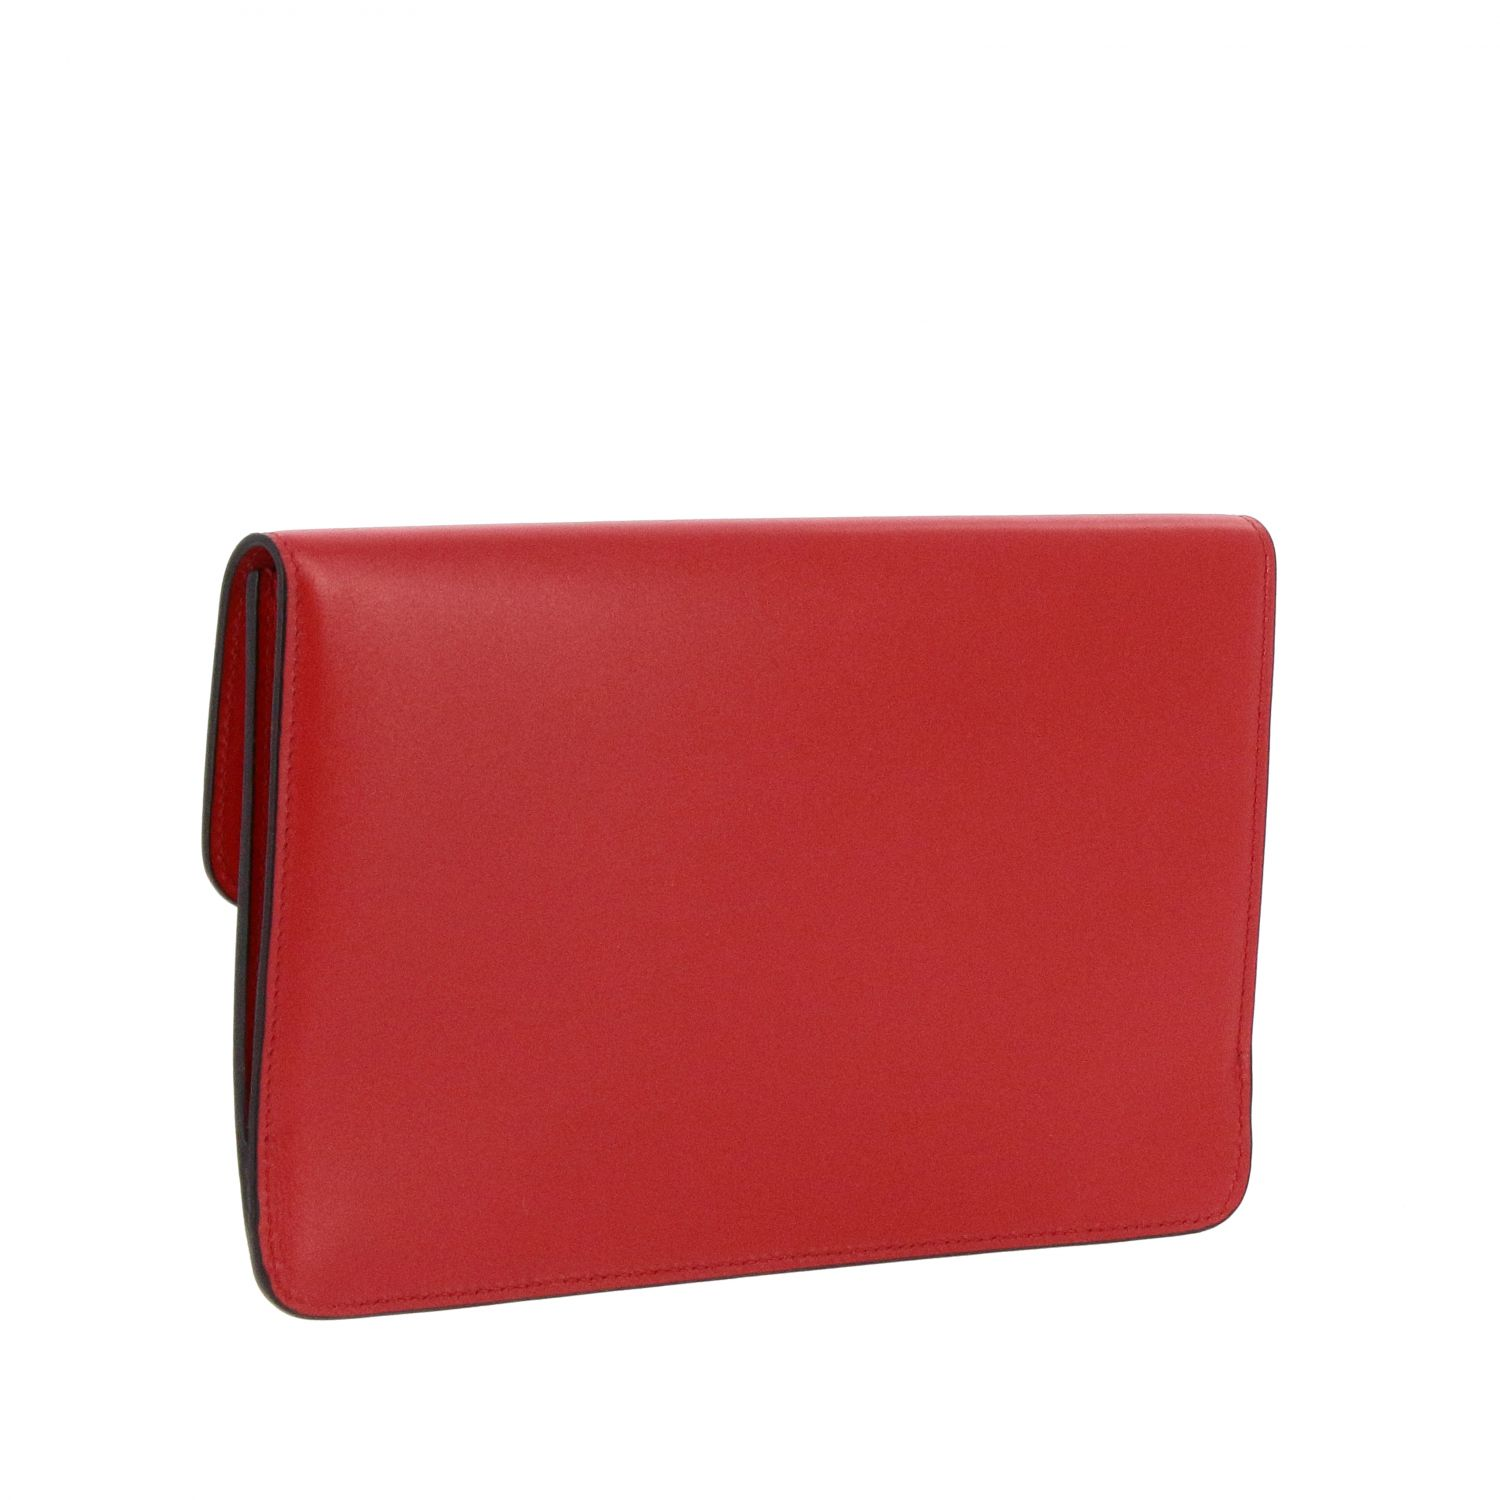 Clutch Valentino Garavani: Mini bag women Valentino Garavani red 3